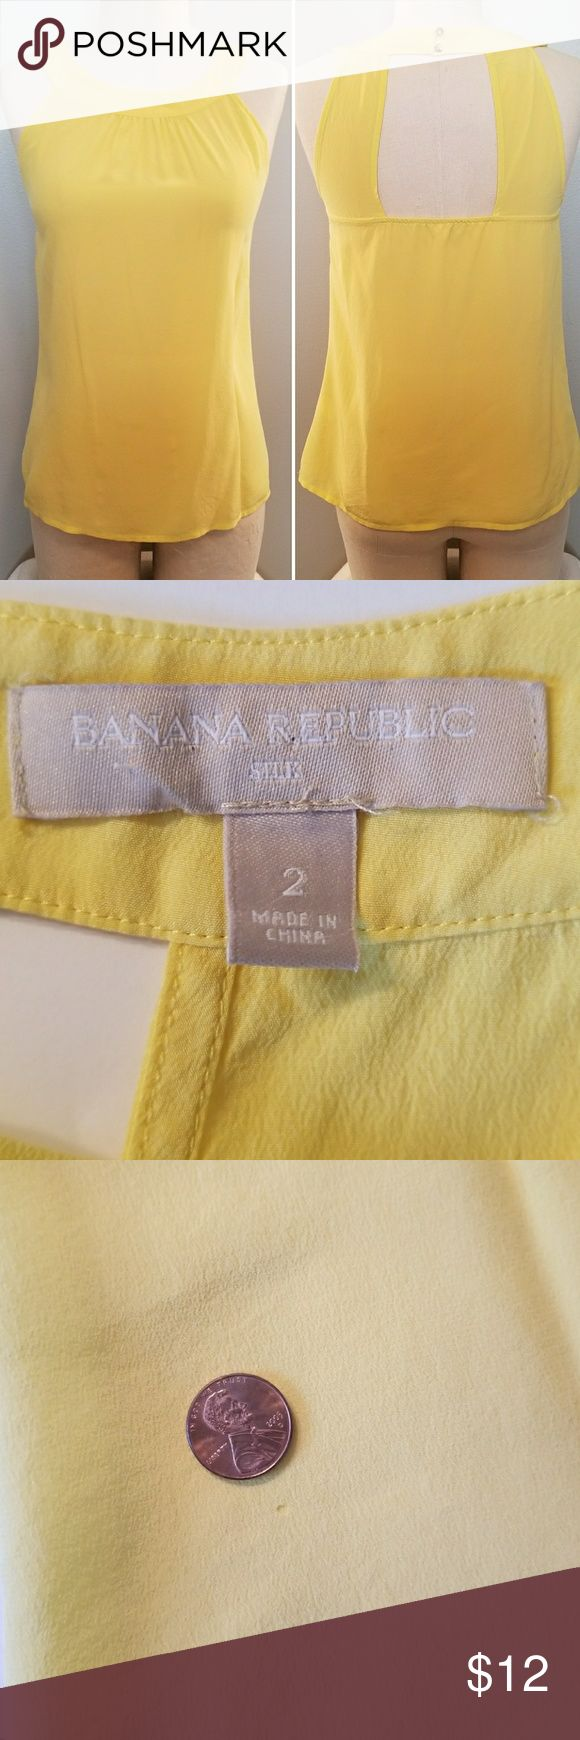 BananaRepublic sleeveless silk blouse This lovely canary yellow silk top is slightly sheer, runs true to size and is perfect for spring or laying for cooler weather. Pure silk. Has an almost imperceptible pin size hole shown in 3rd picture. Priced accordingly Banana Republic Tops Blouses